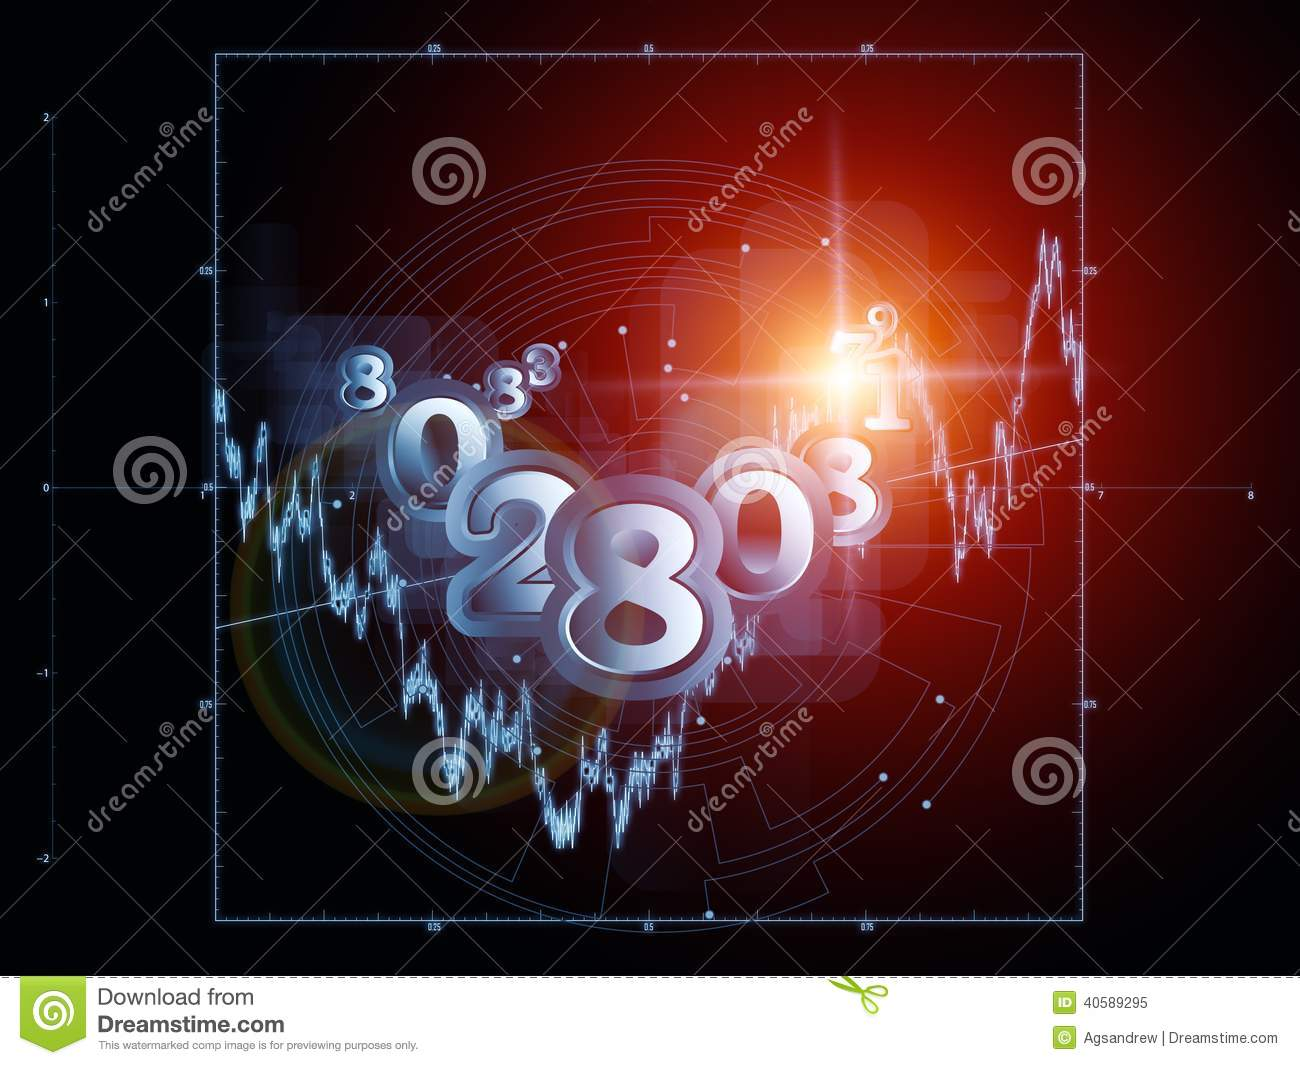 virtual mathematics mdash stock - photo #18